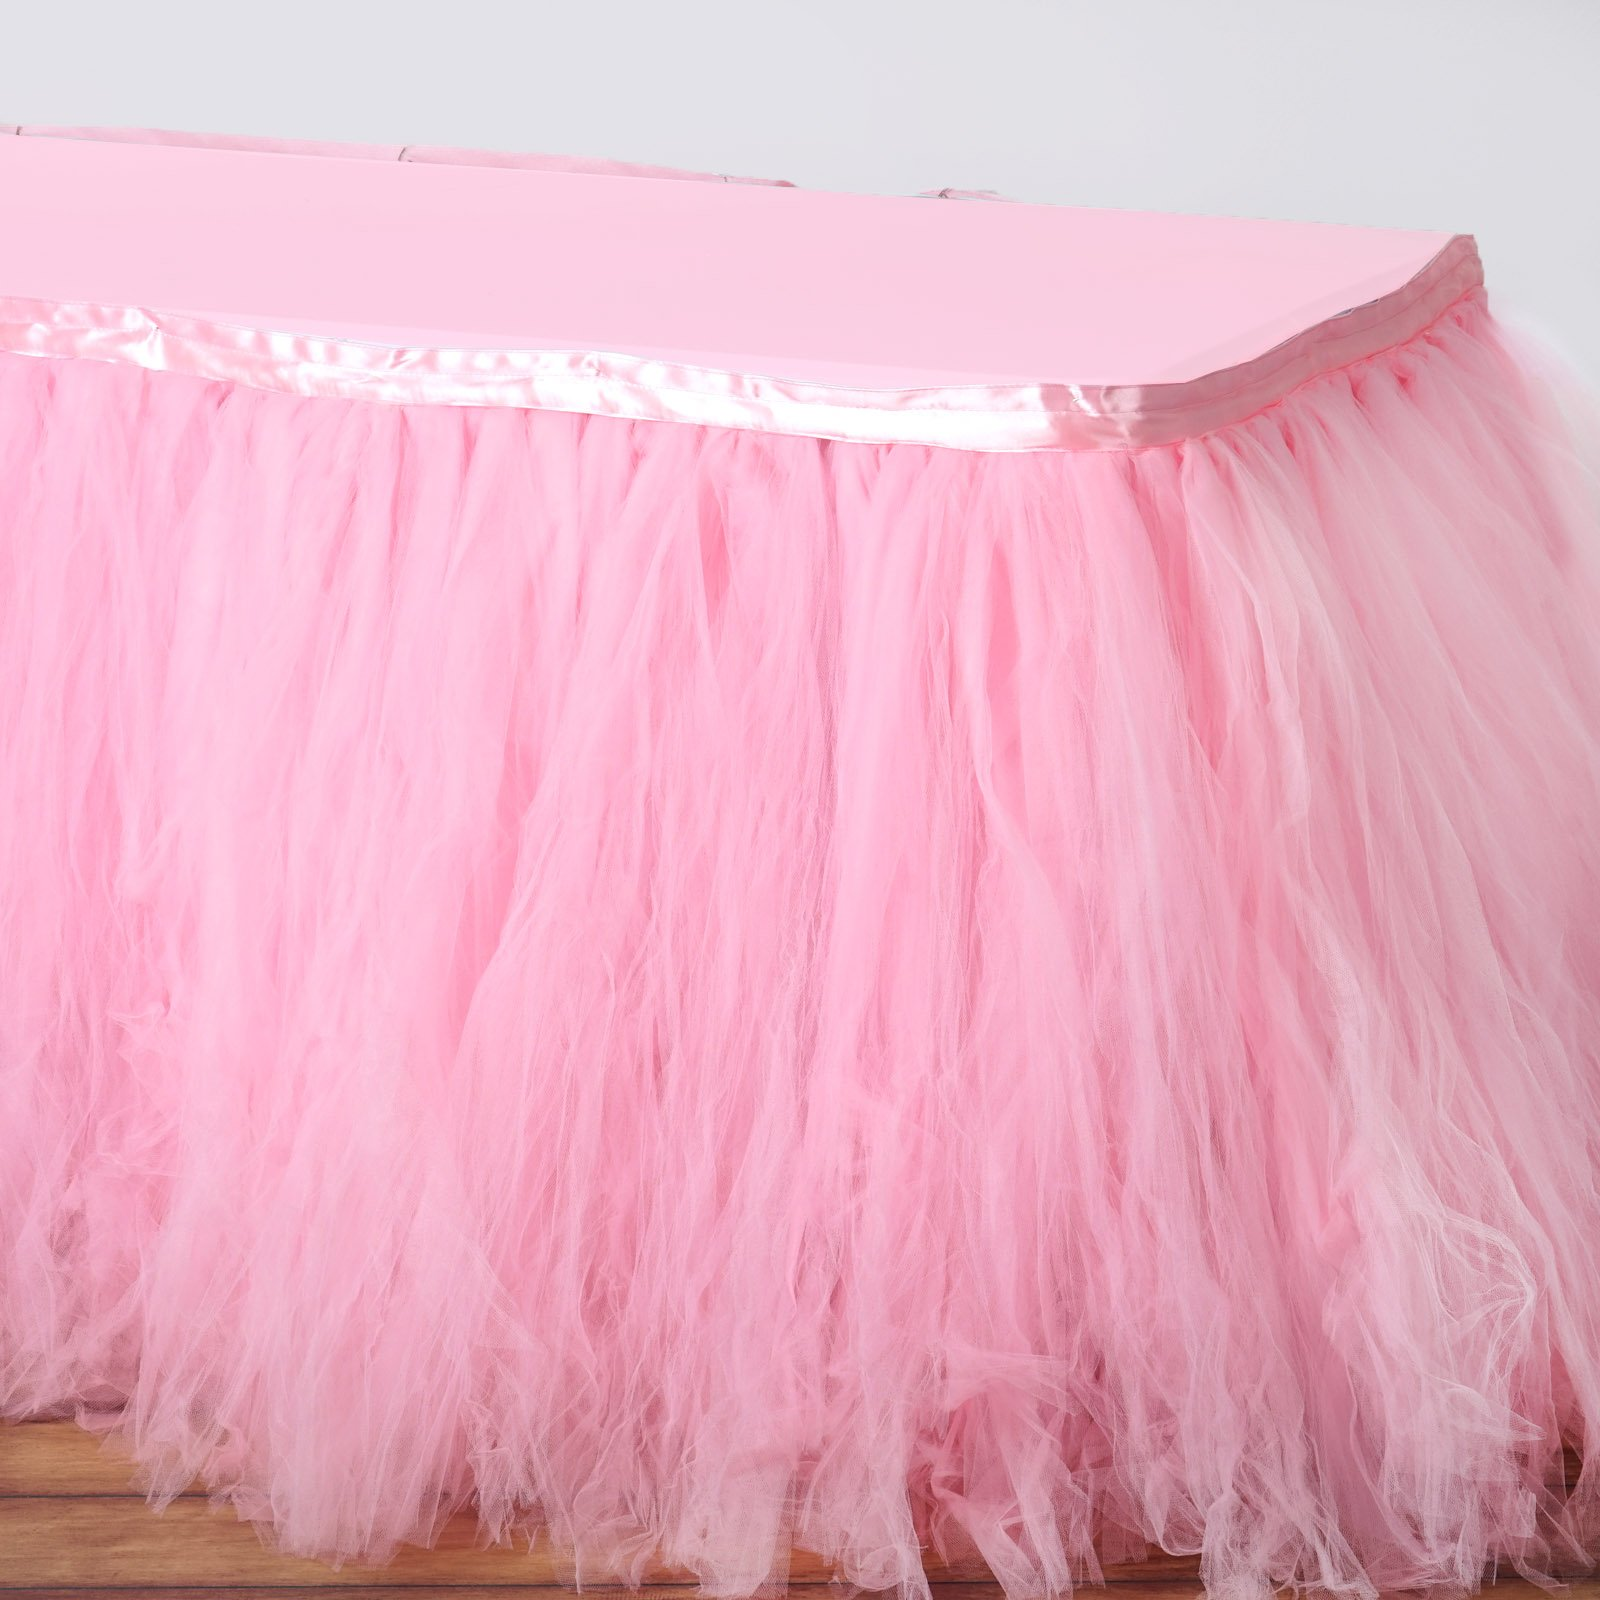 Tableclothsfactory 17ft FULL SIZE 8 Layer Fluffy Tulle - Tutu Table Skirt - Rose Quartz Pink